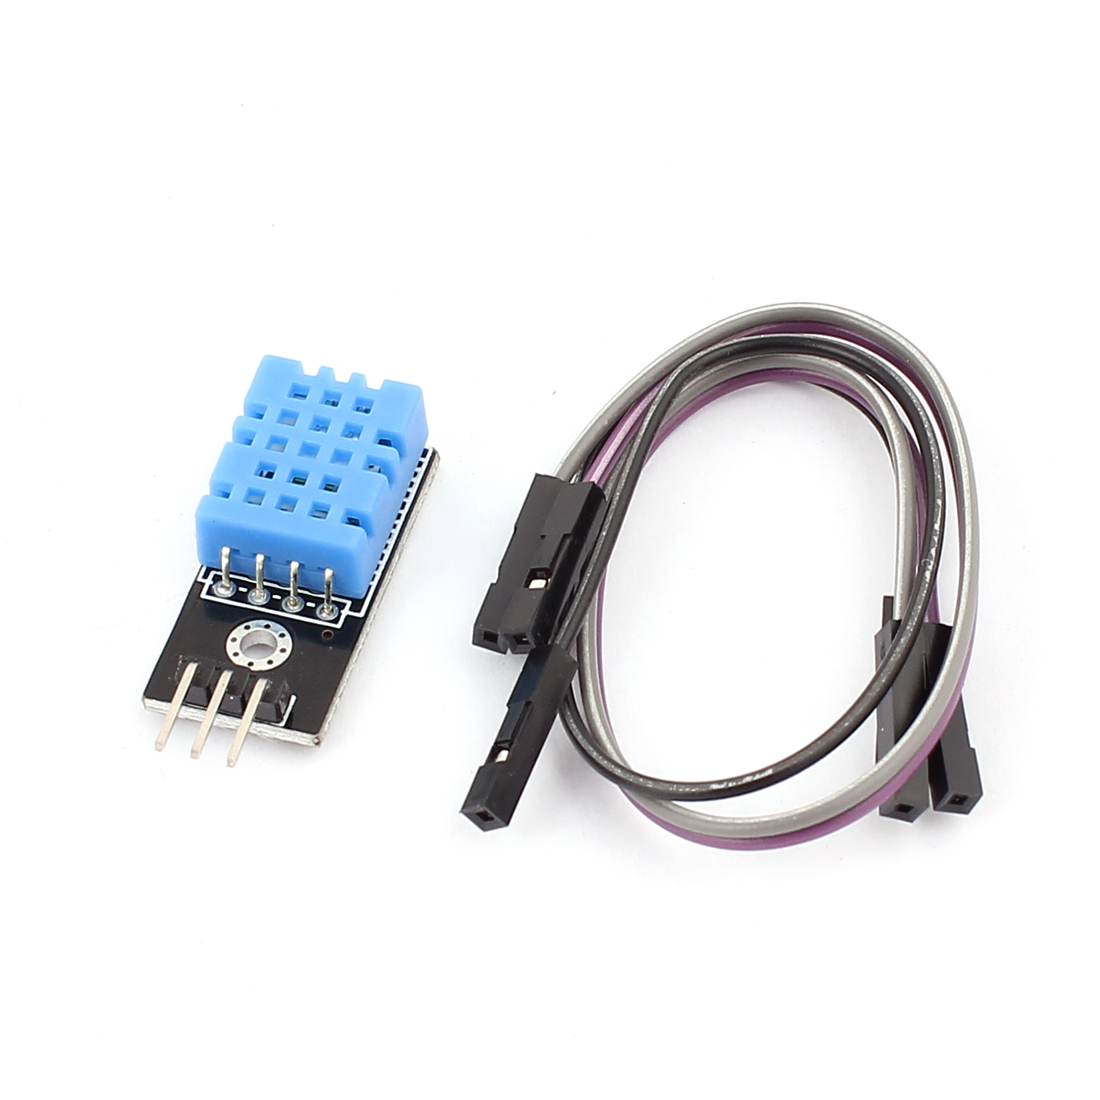 DHT11 Single Digital Output Temperature Humidity Sensor Module w Cable